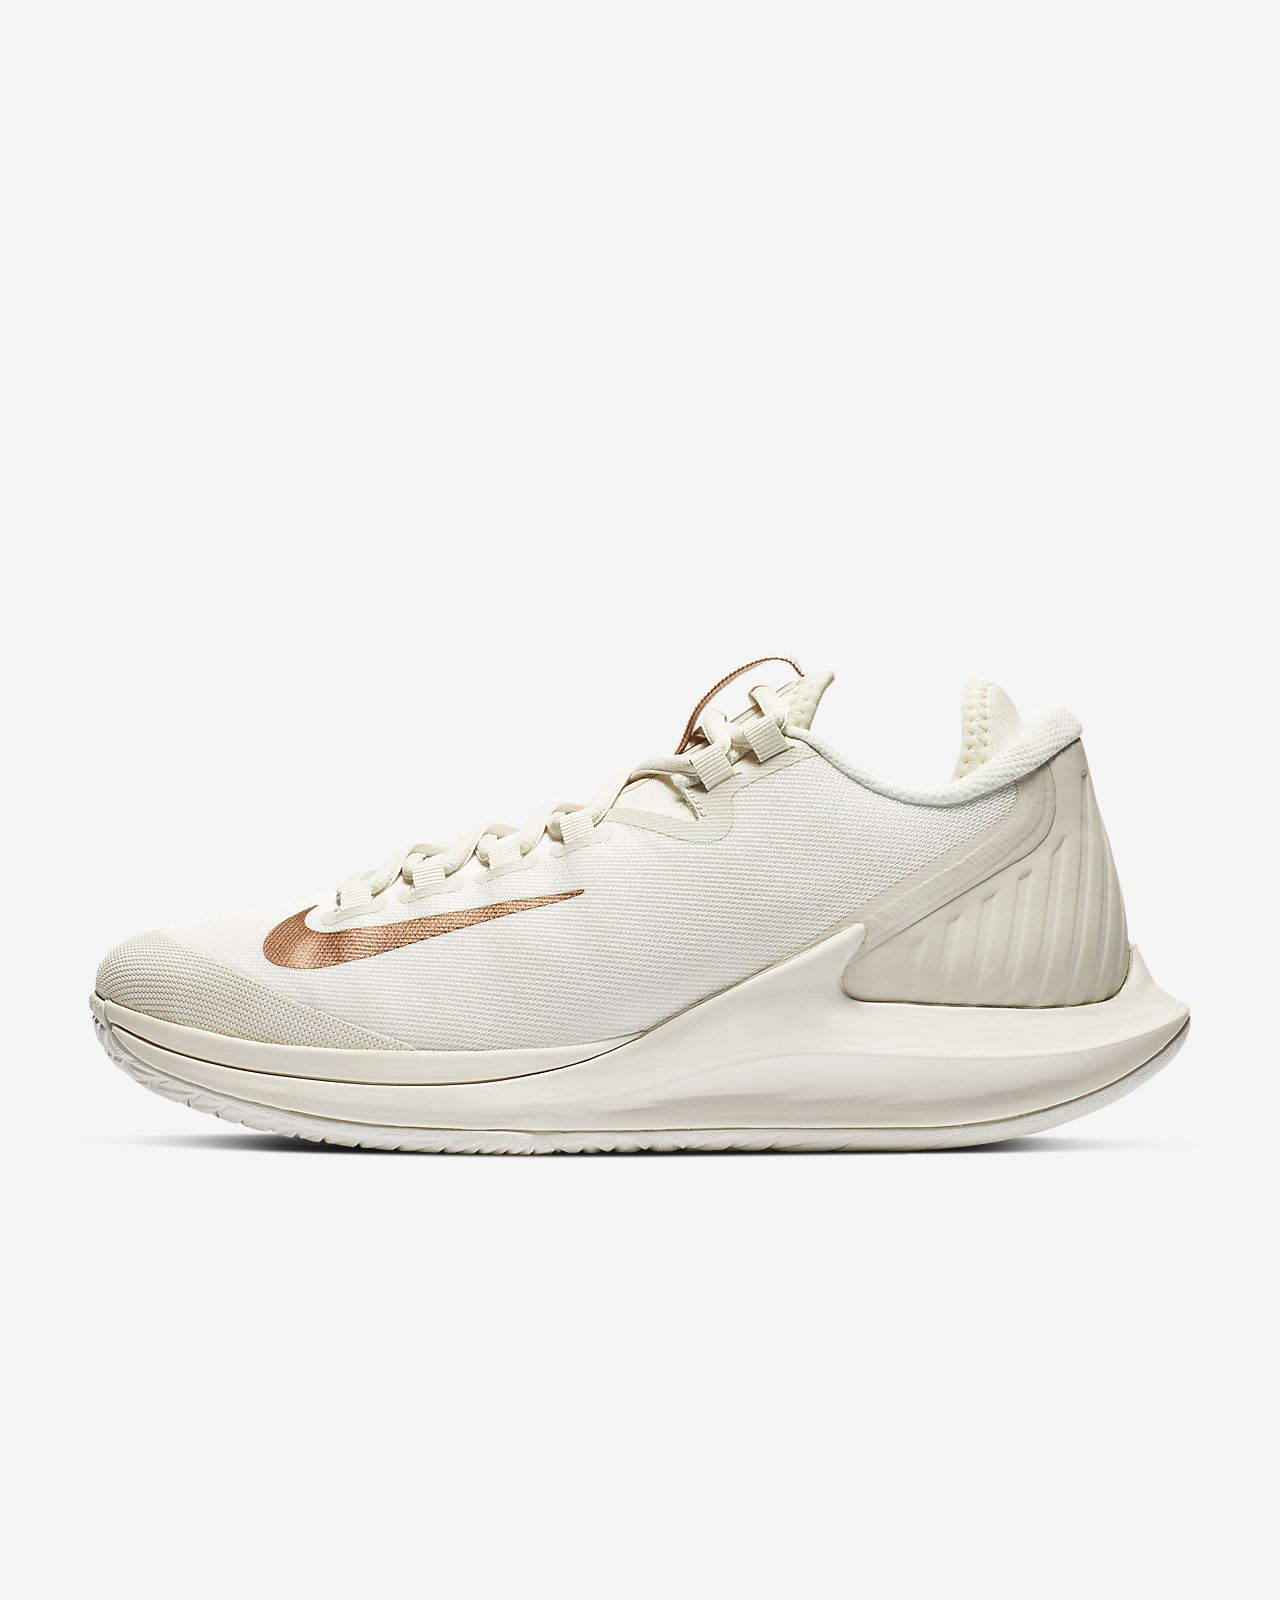 NikeCourt Air Zoom Zero tennissko til dame